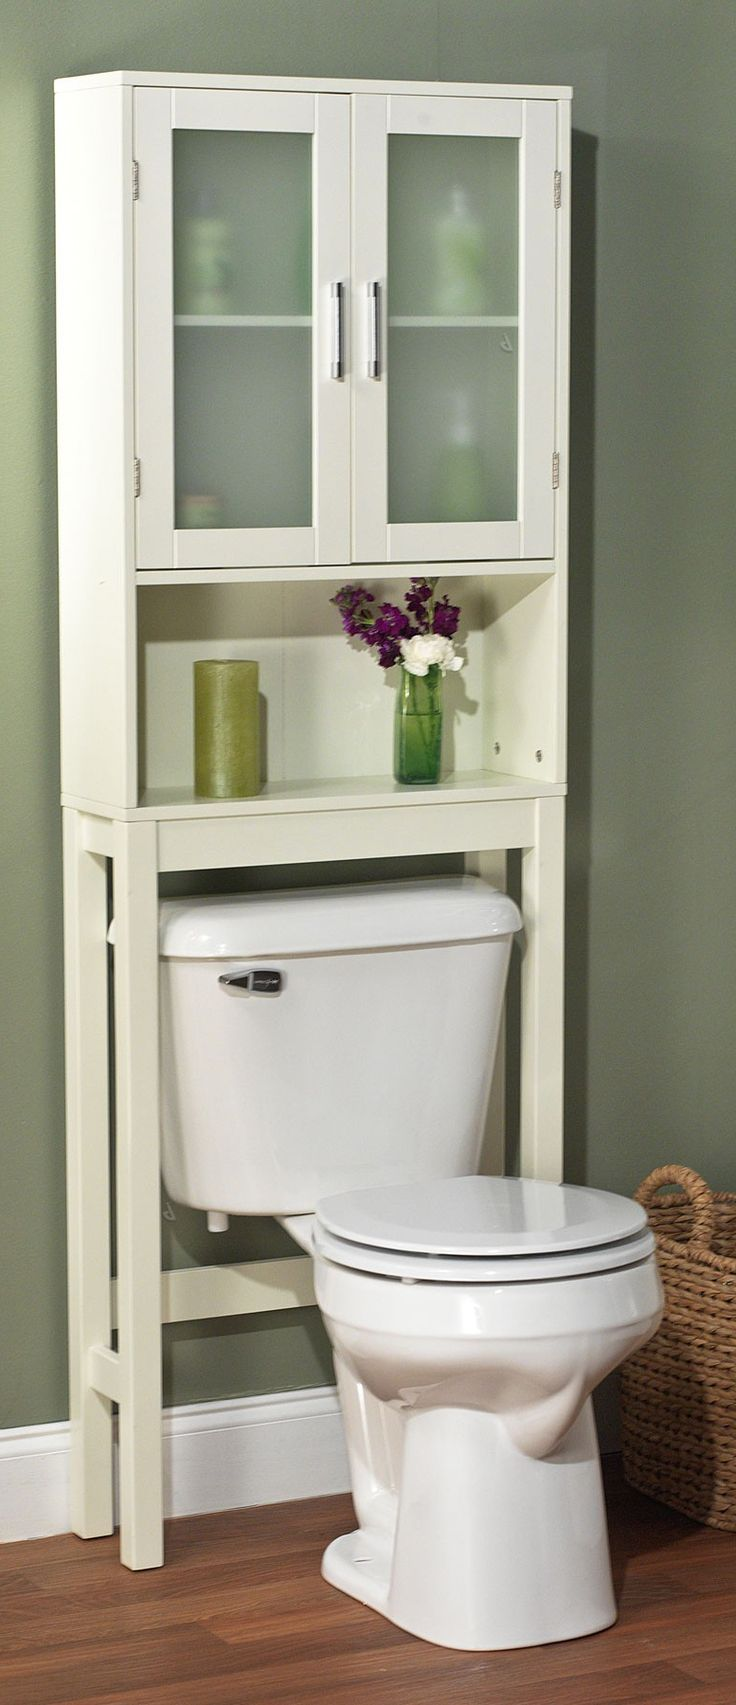 25 best ideas about bathroom space savers on pinterest for Bathroom furniture ideas